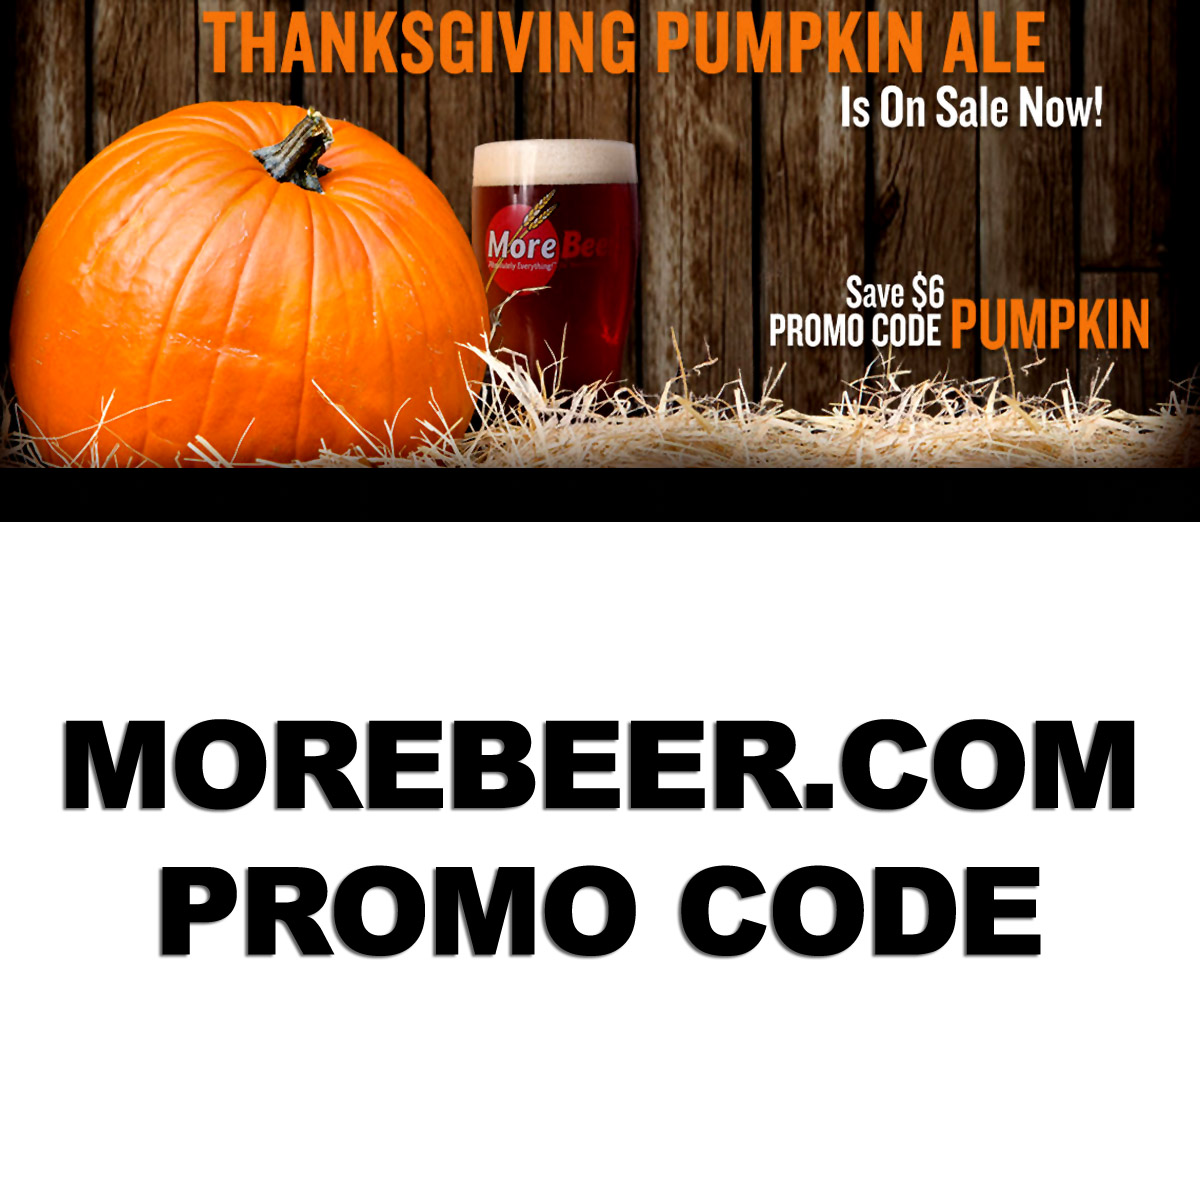 MoreBeer Save $6 On A More Beer Pumpkin Ale Beer Kit With This MoreBeer.com Promo Code Coupon Code